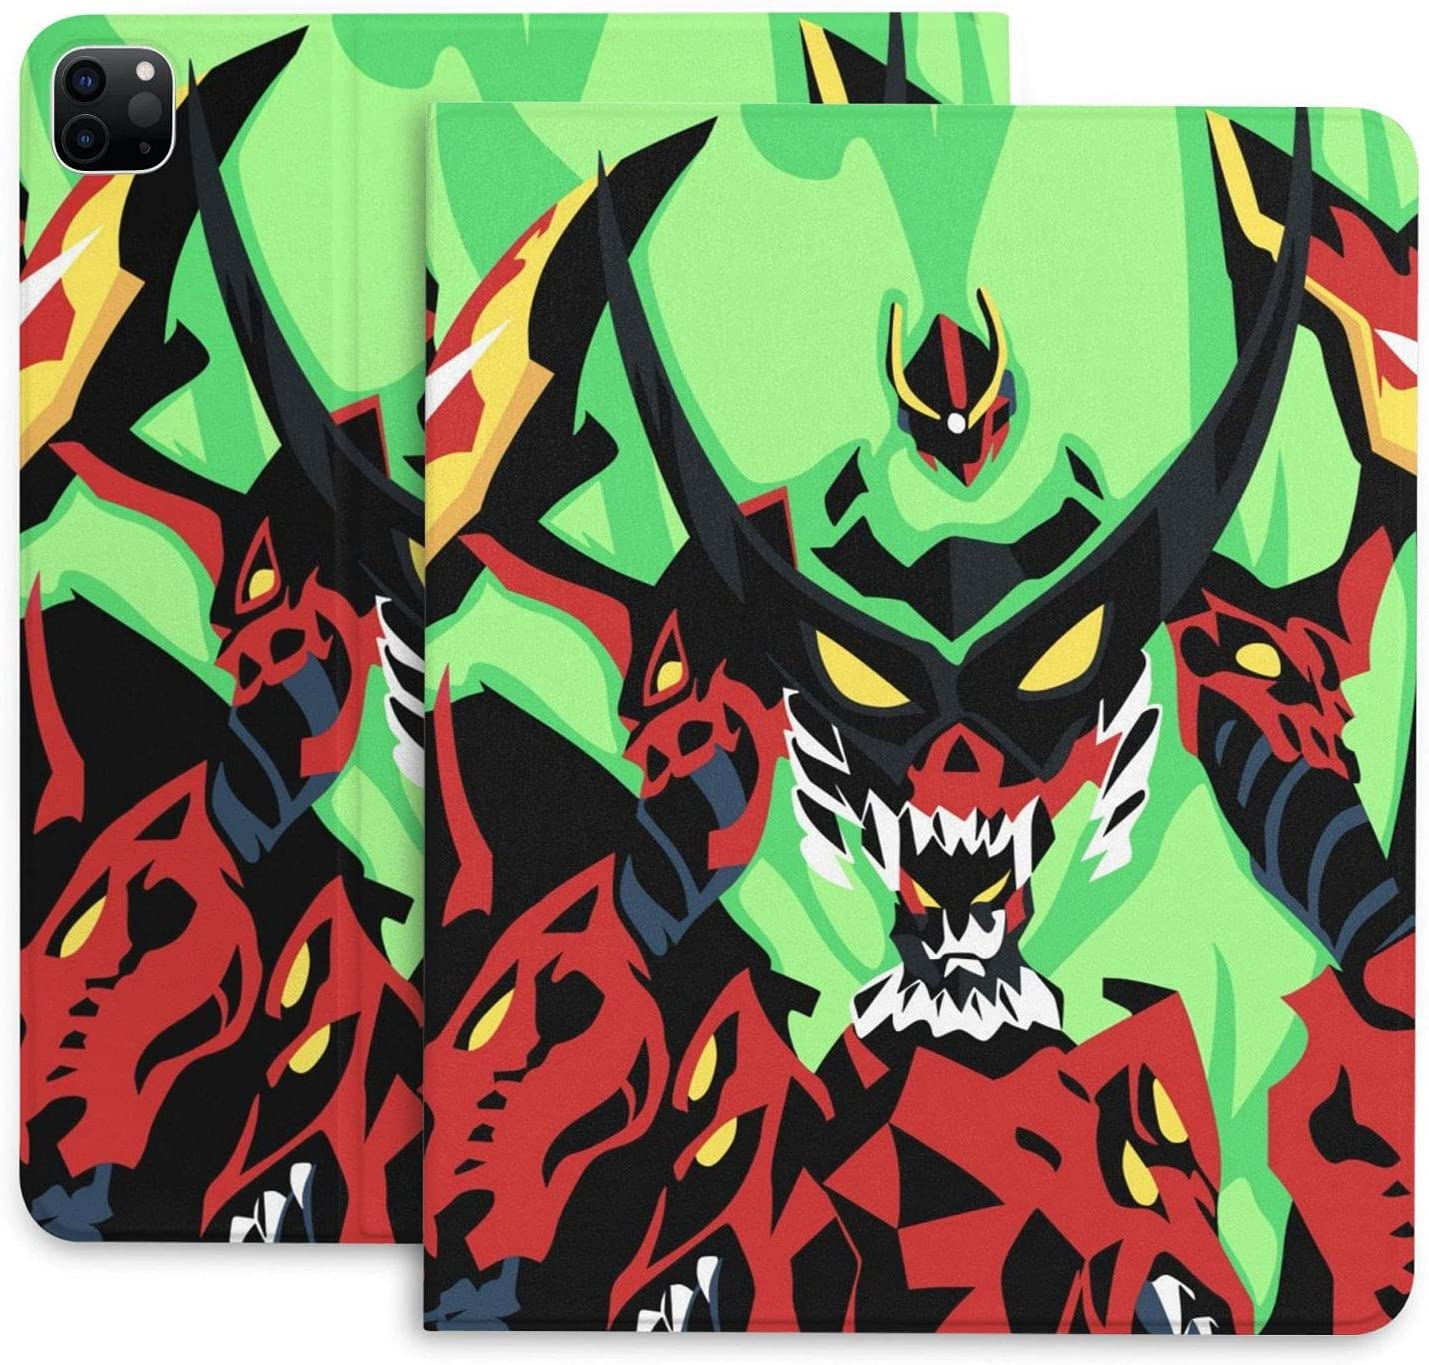 Gurren Lagann IPad Case 2020 New sales Ipad 11 Shipping included Inch Anime Pro Tablet